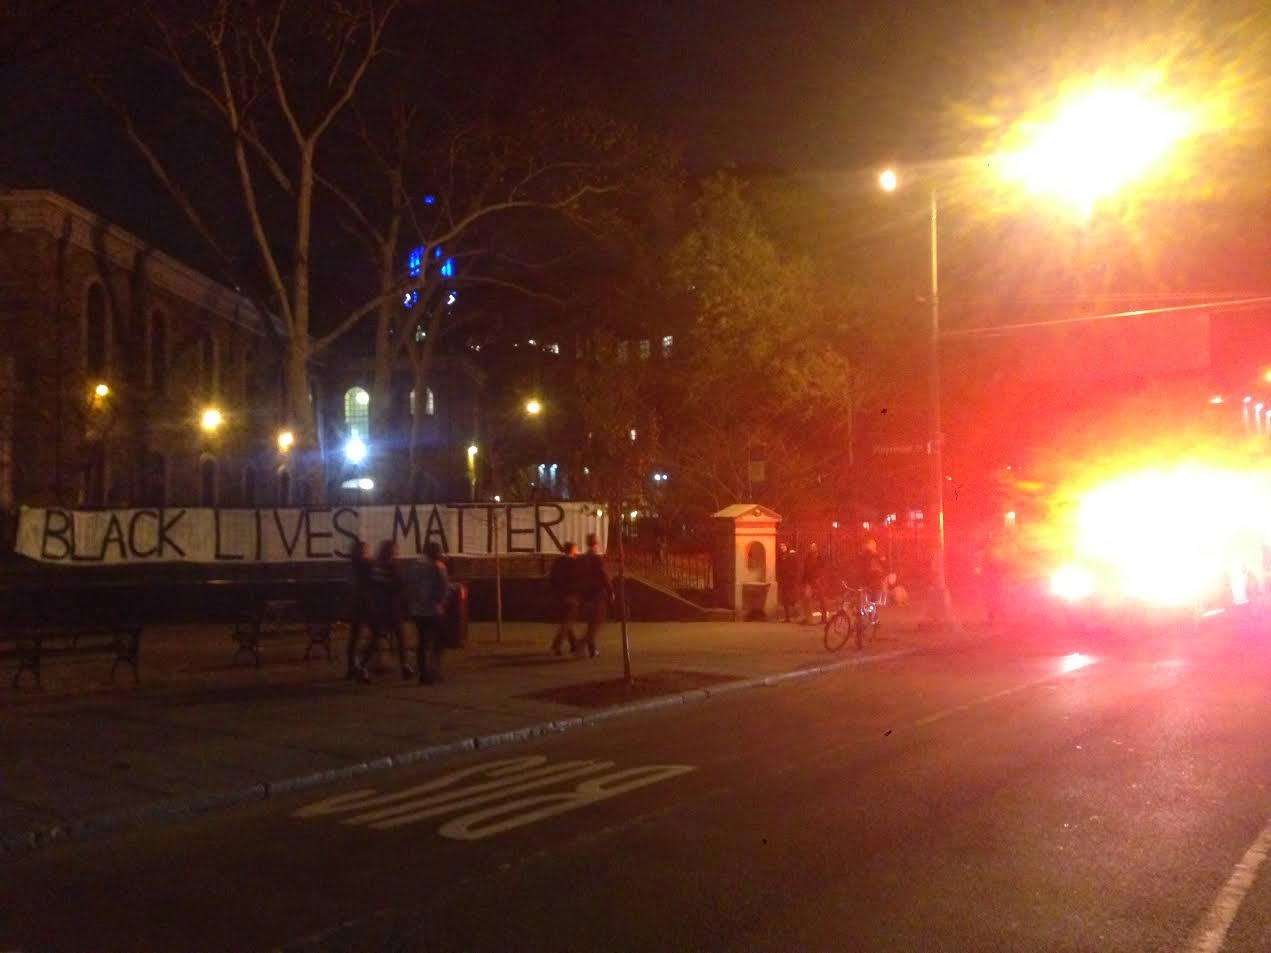 EV Grieve: Ferguson protests in the East Village and Lower East Side